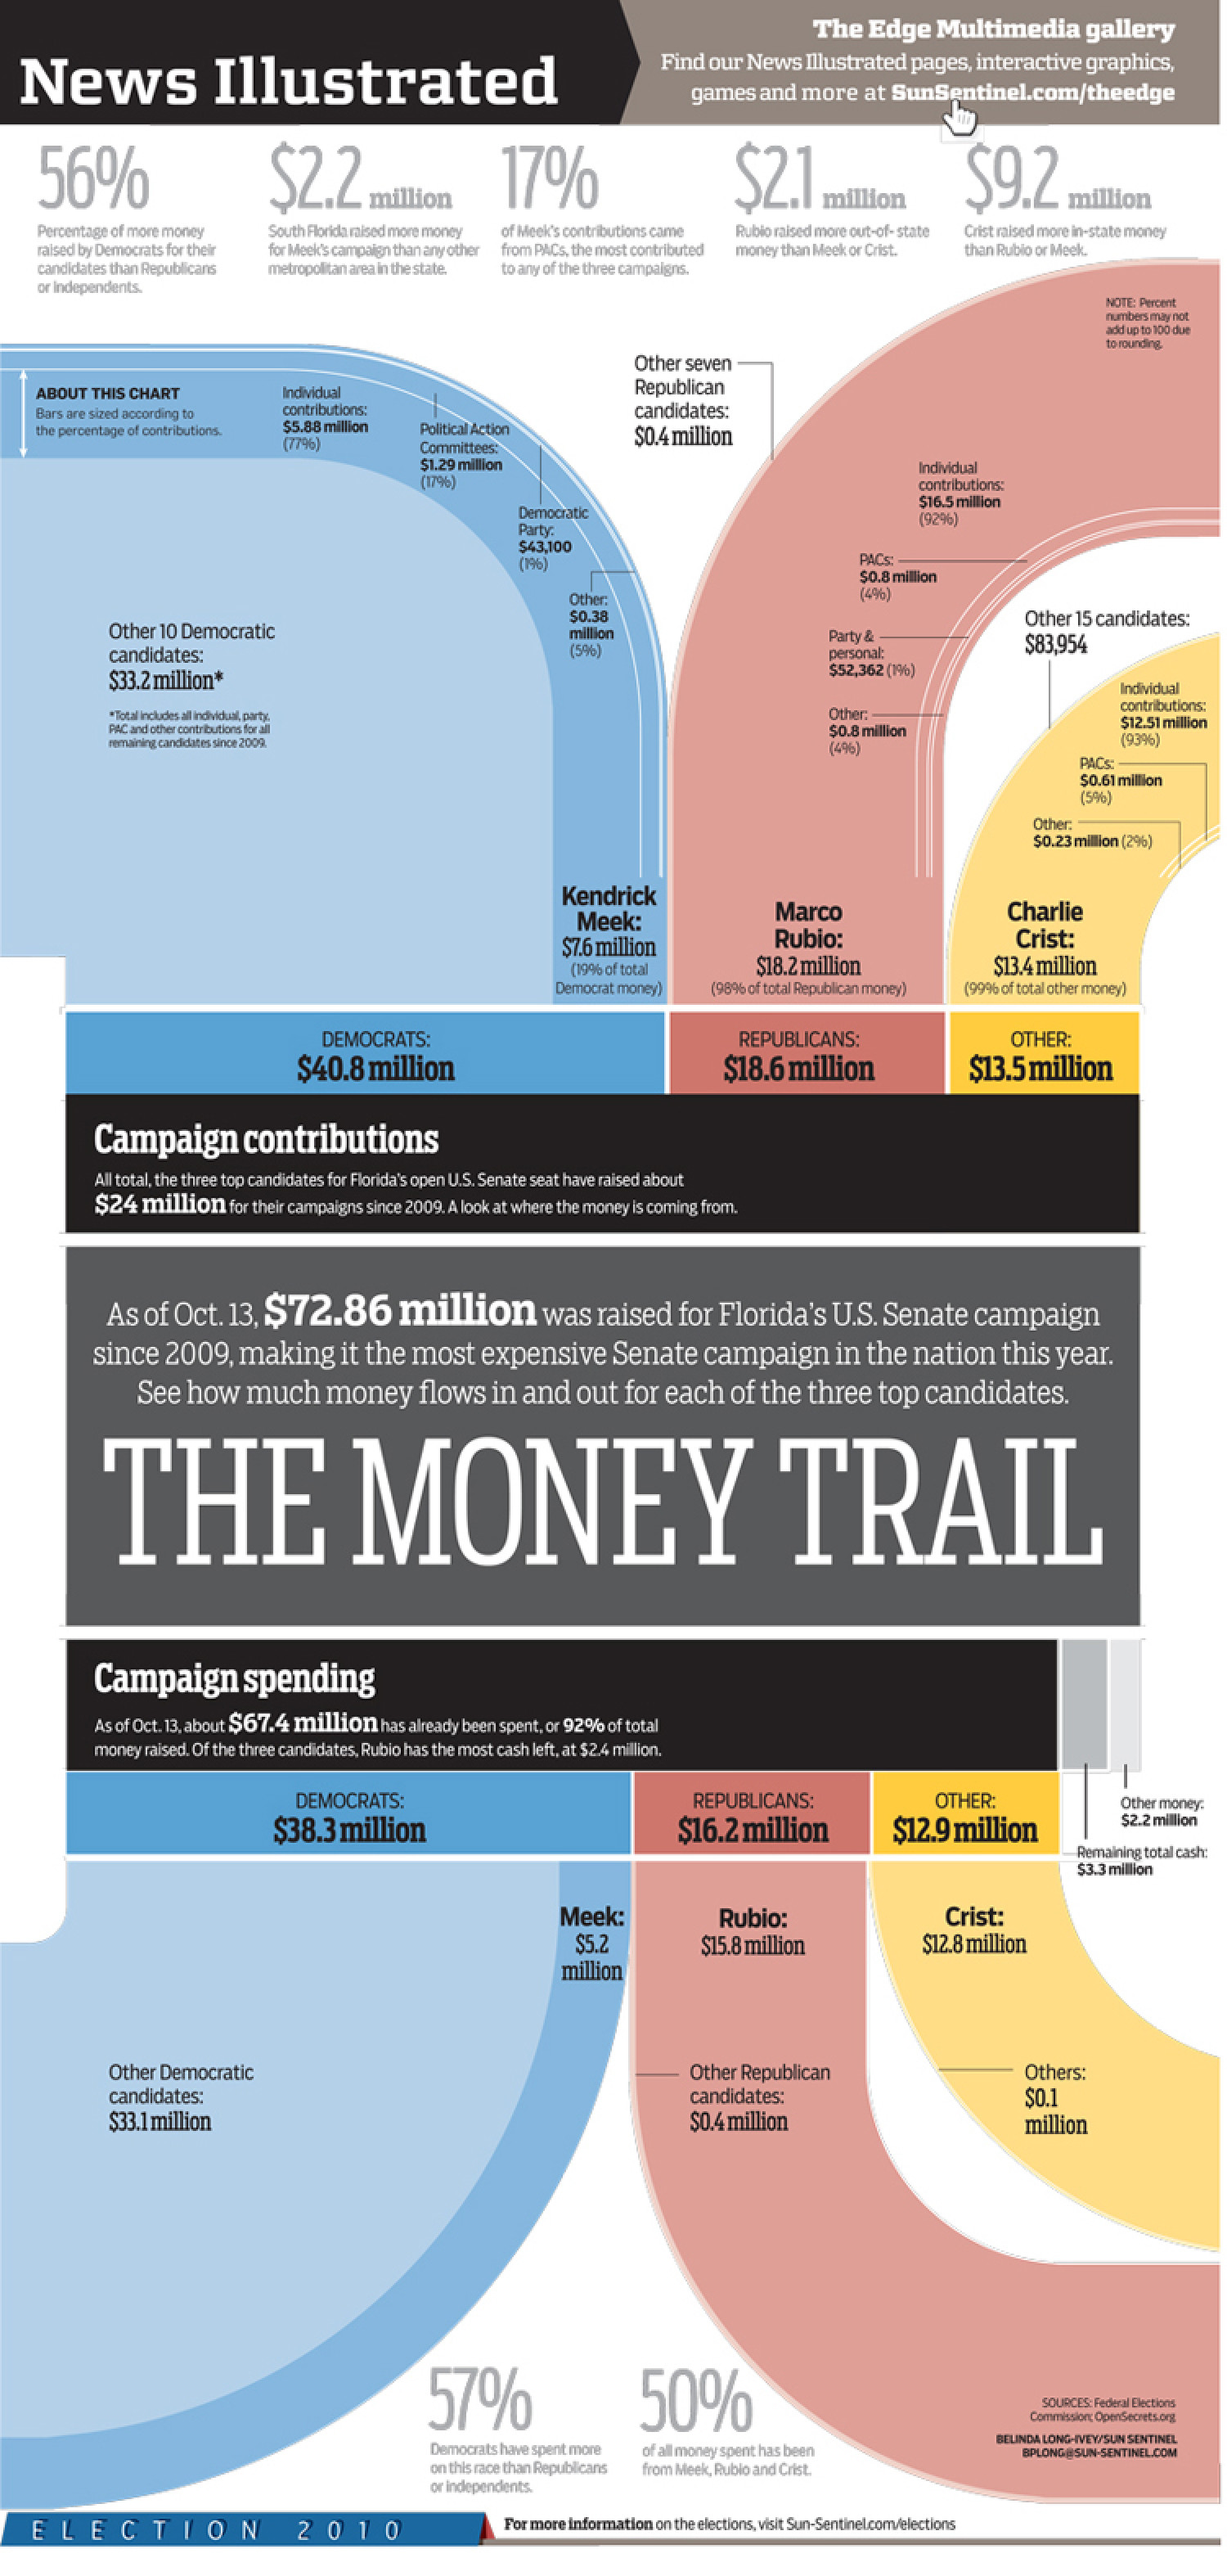 The Money Trail Infographic